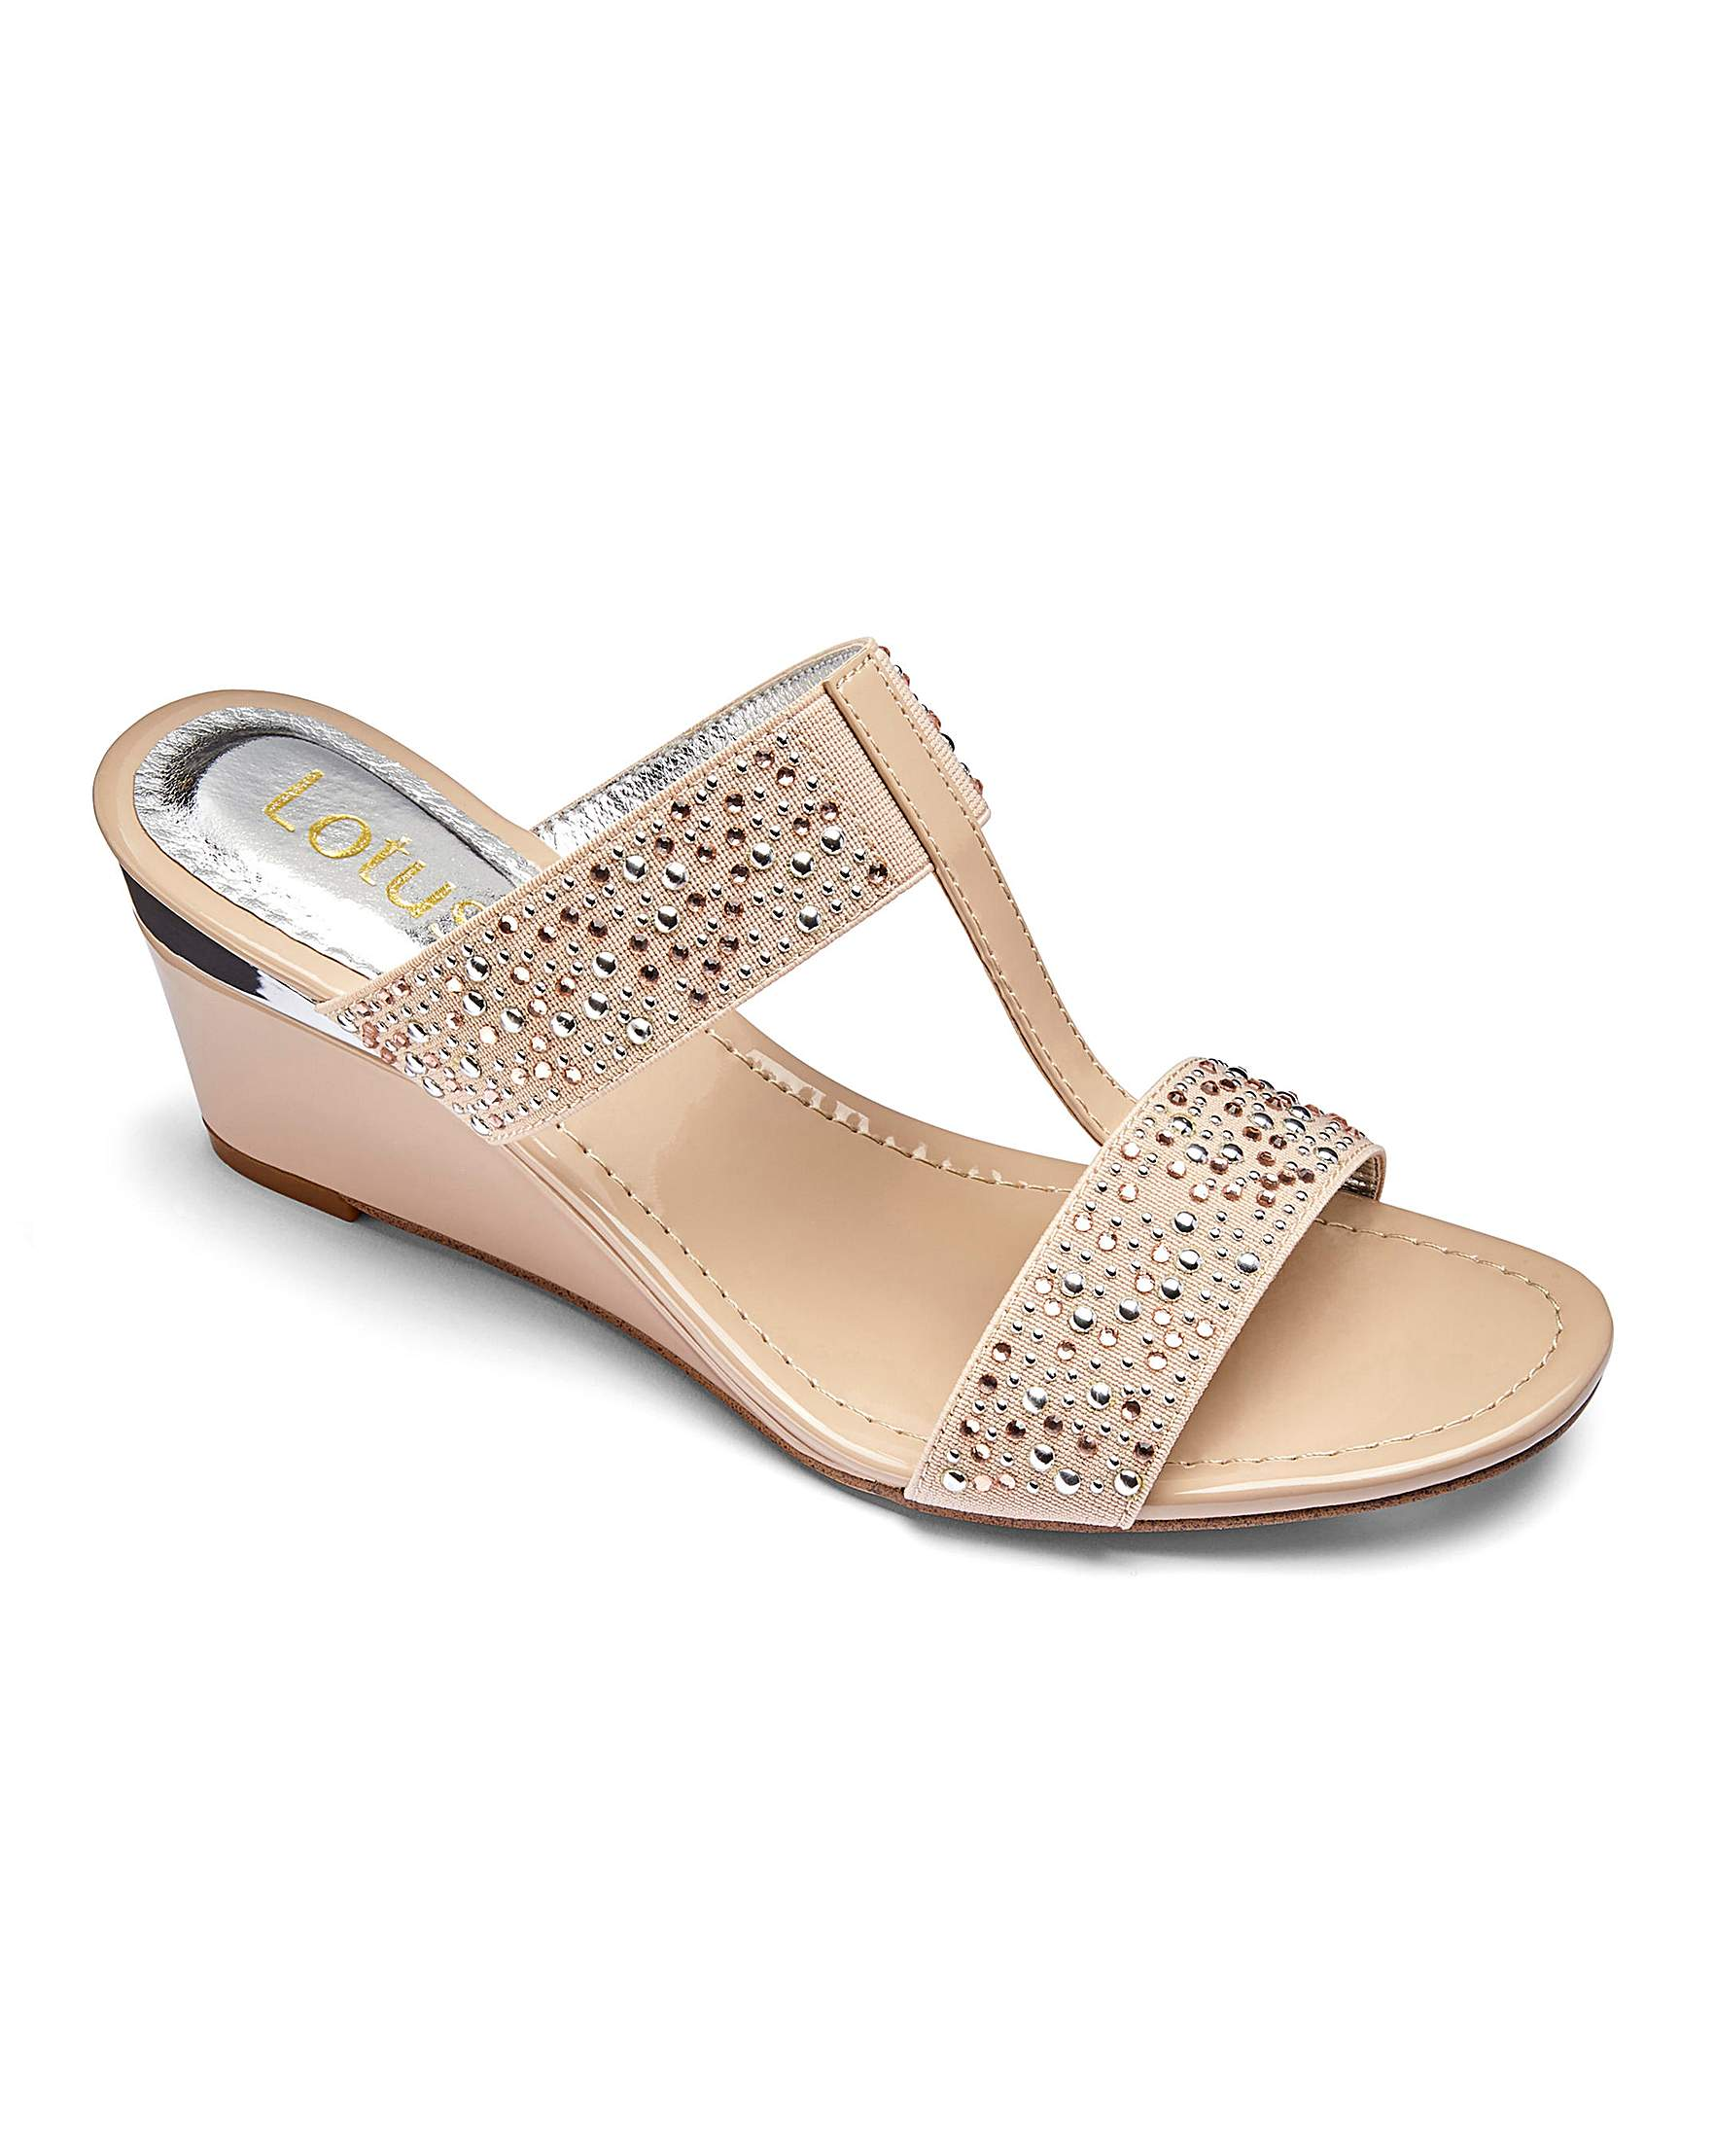 718a9324acd Lotus Wedge Diamante Wedge Mule Sandals Wide E Fit